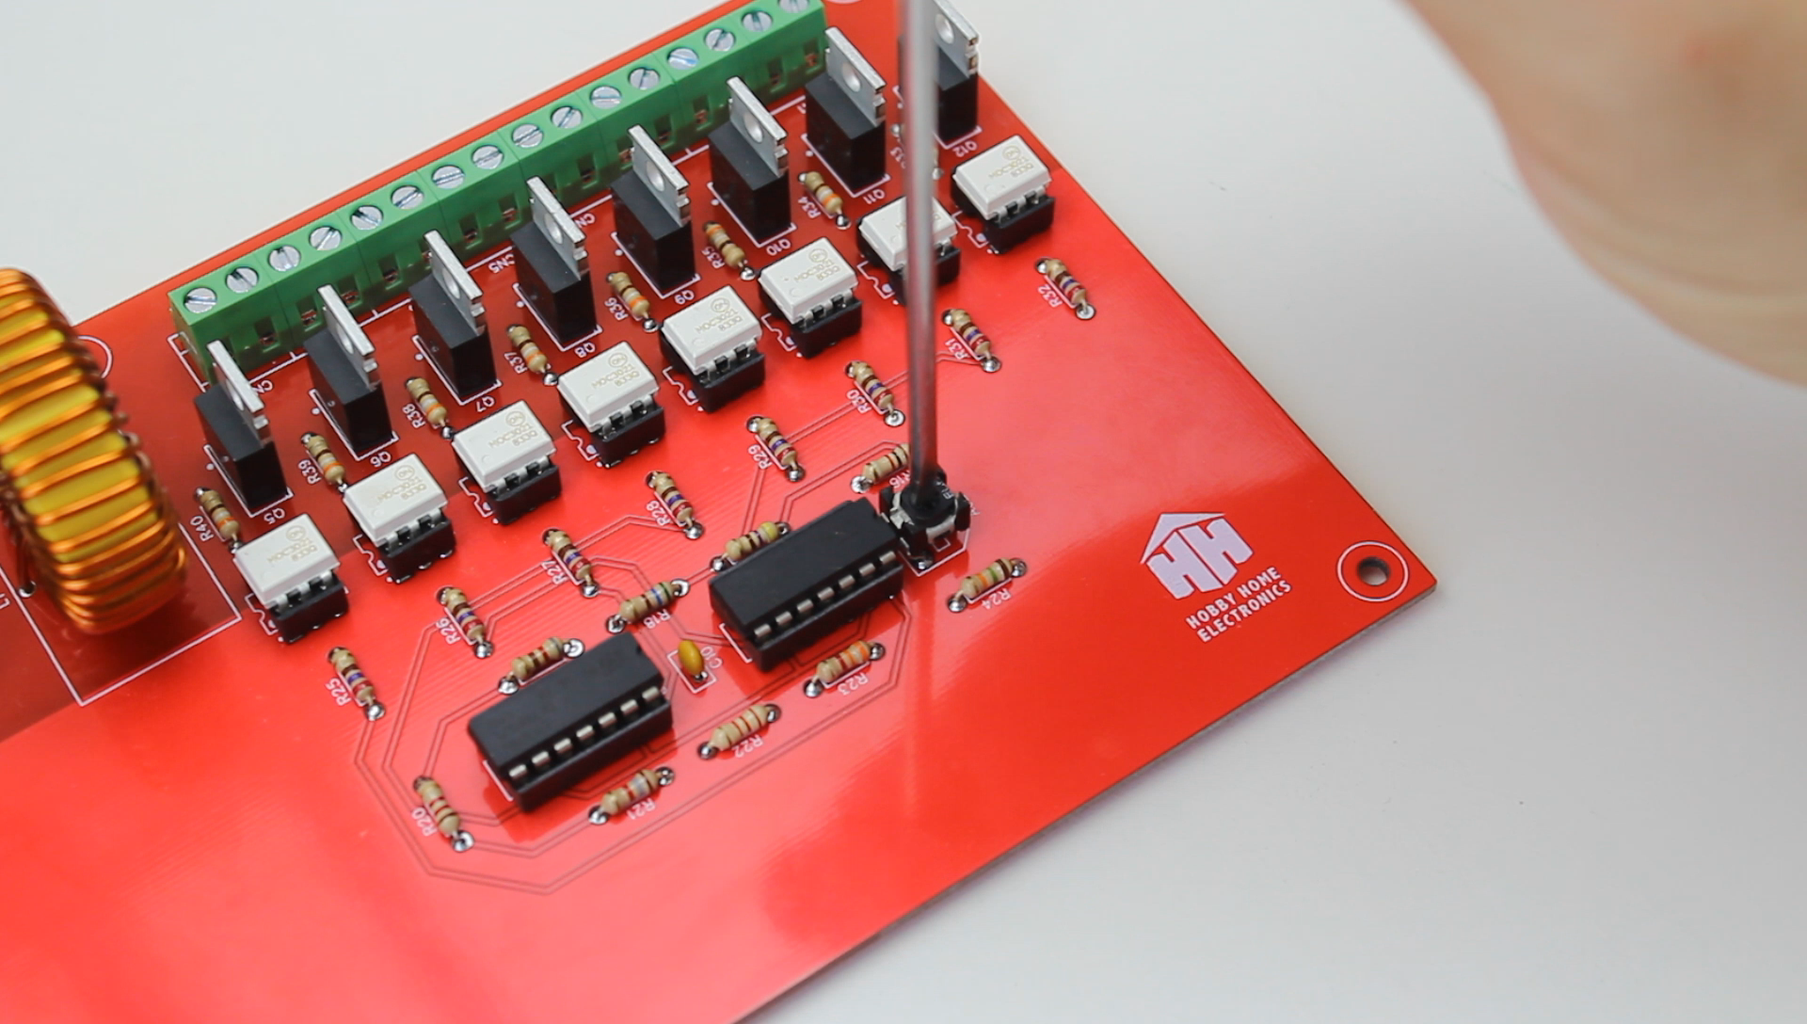 Configuration of the Circuit Control Board.